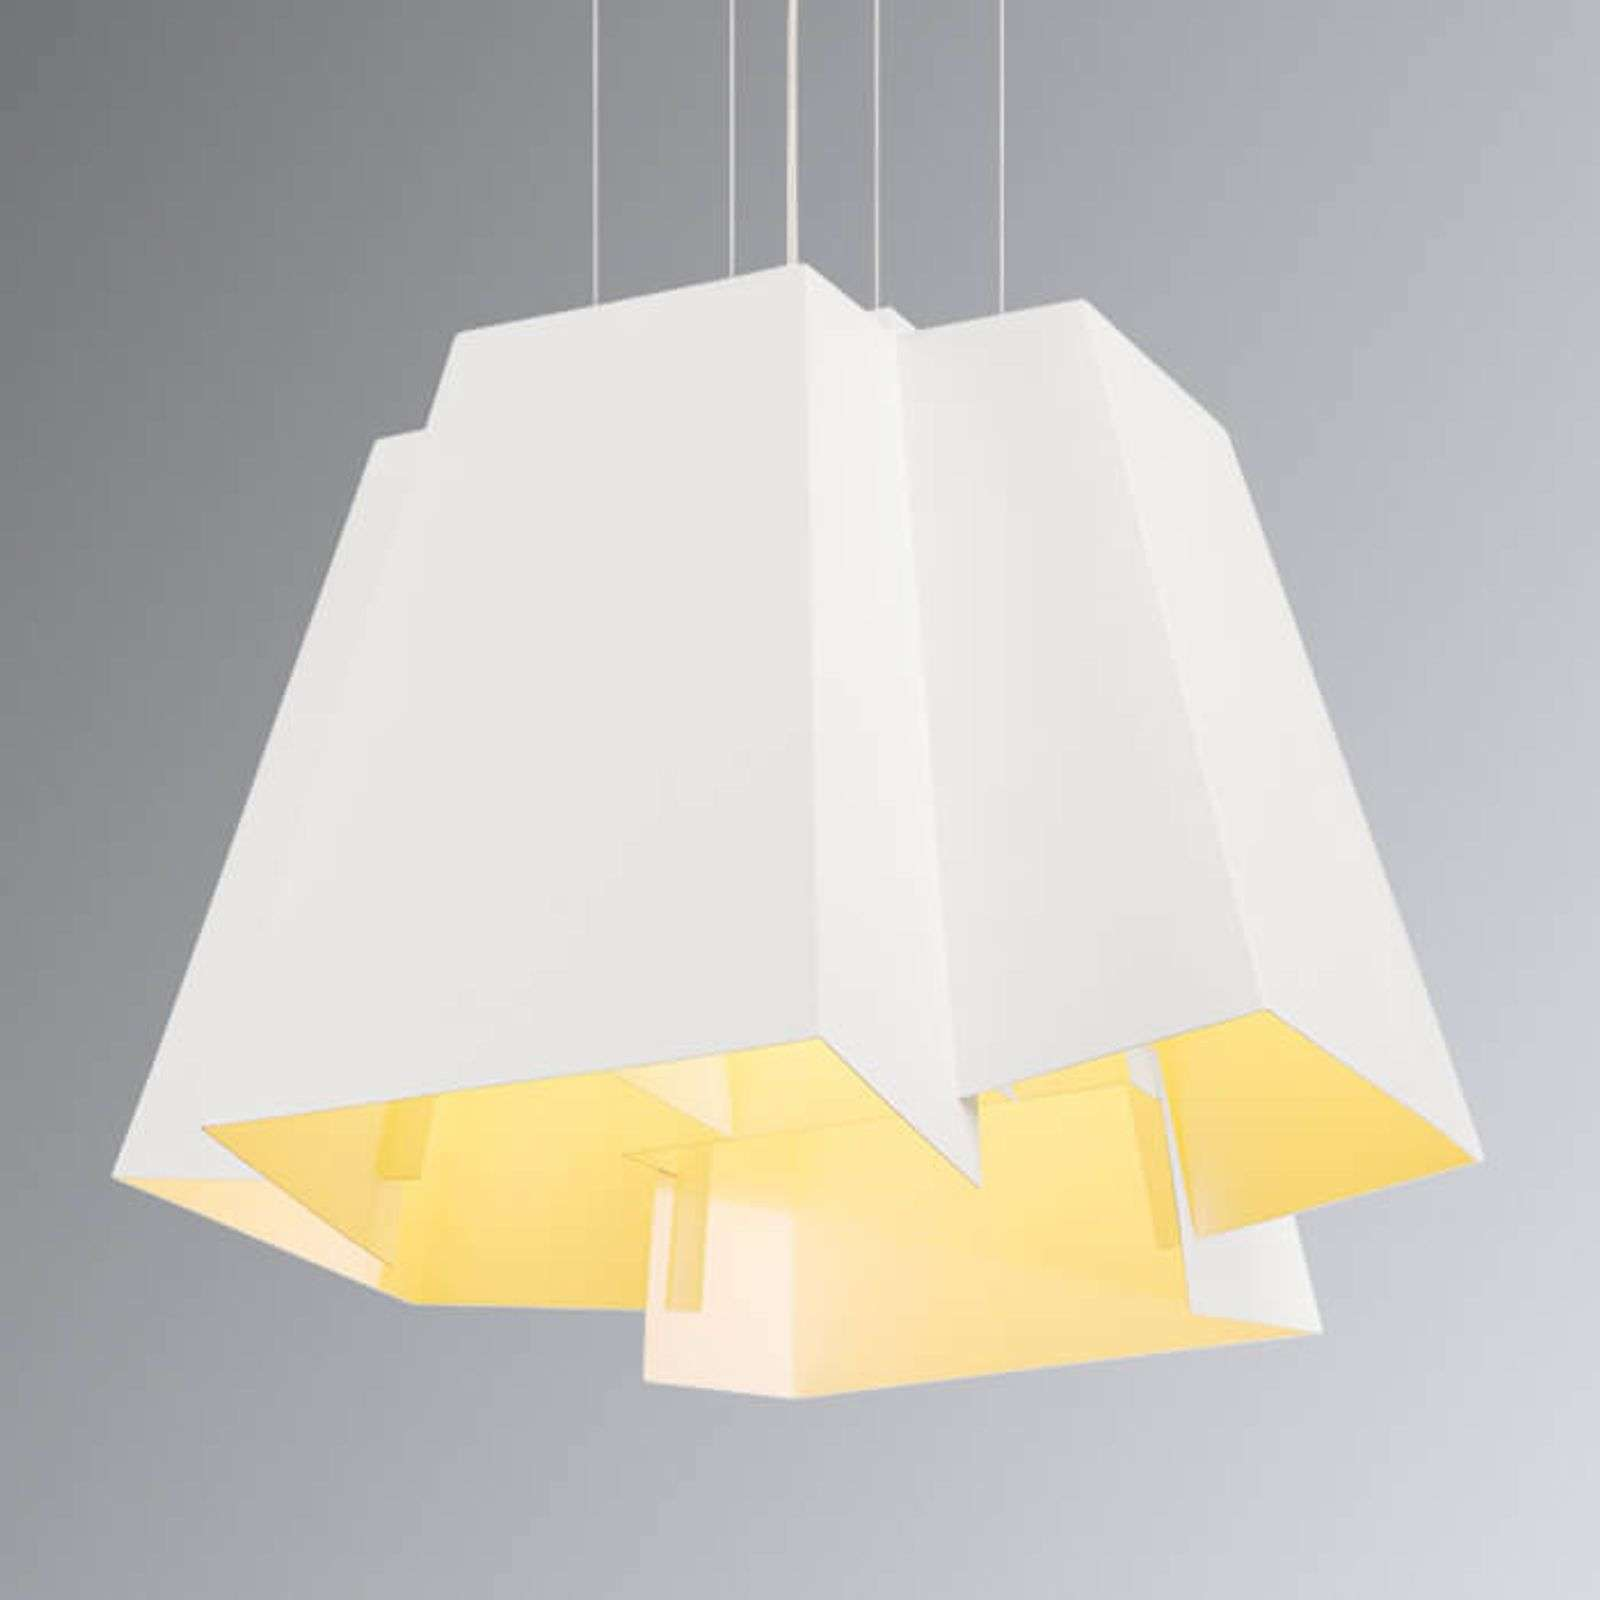 Suspension design Soberbia avec LED